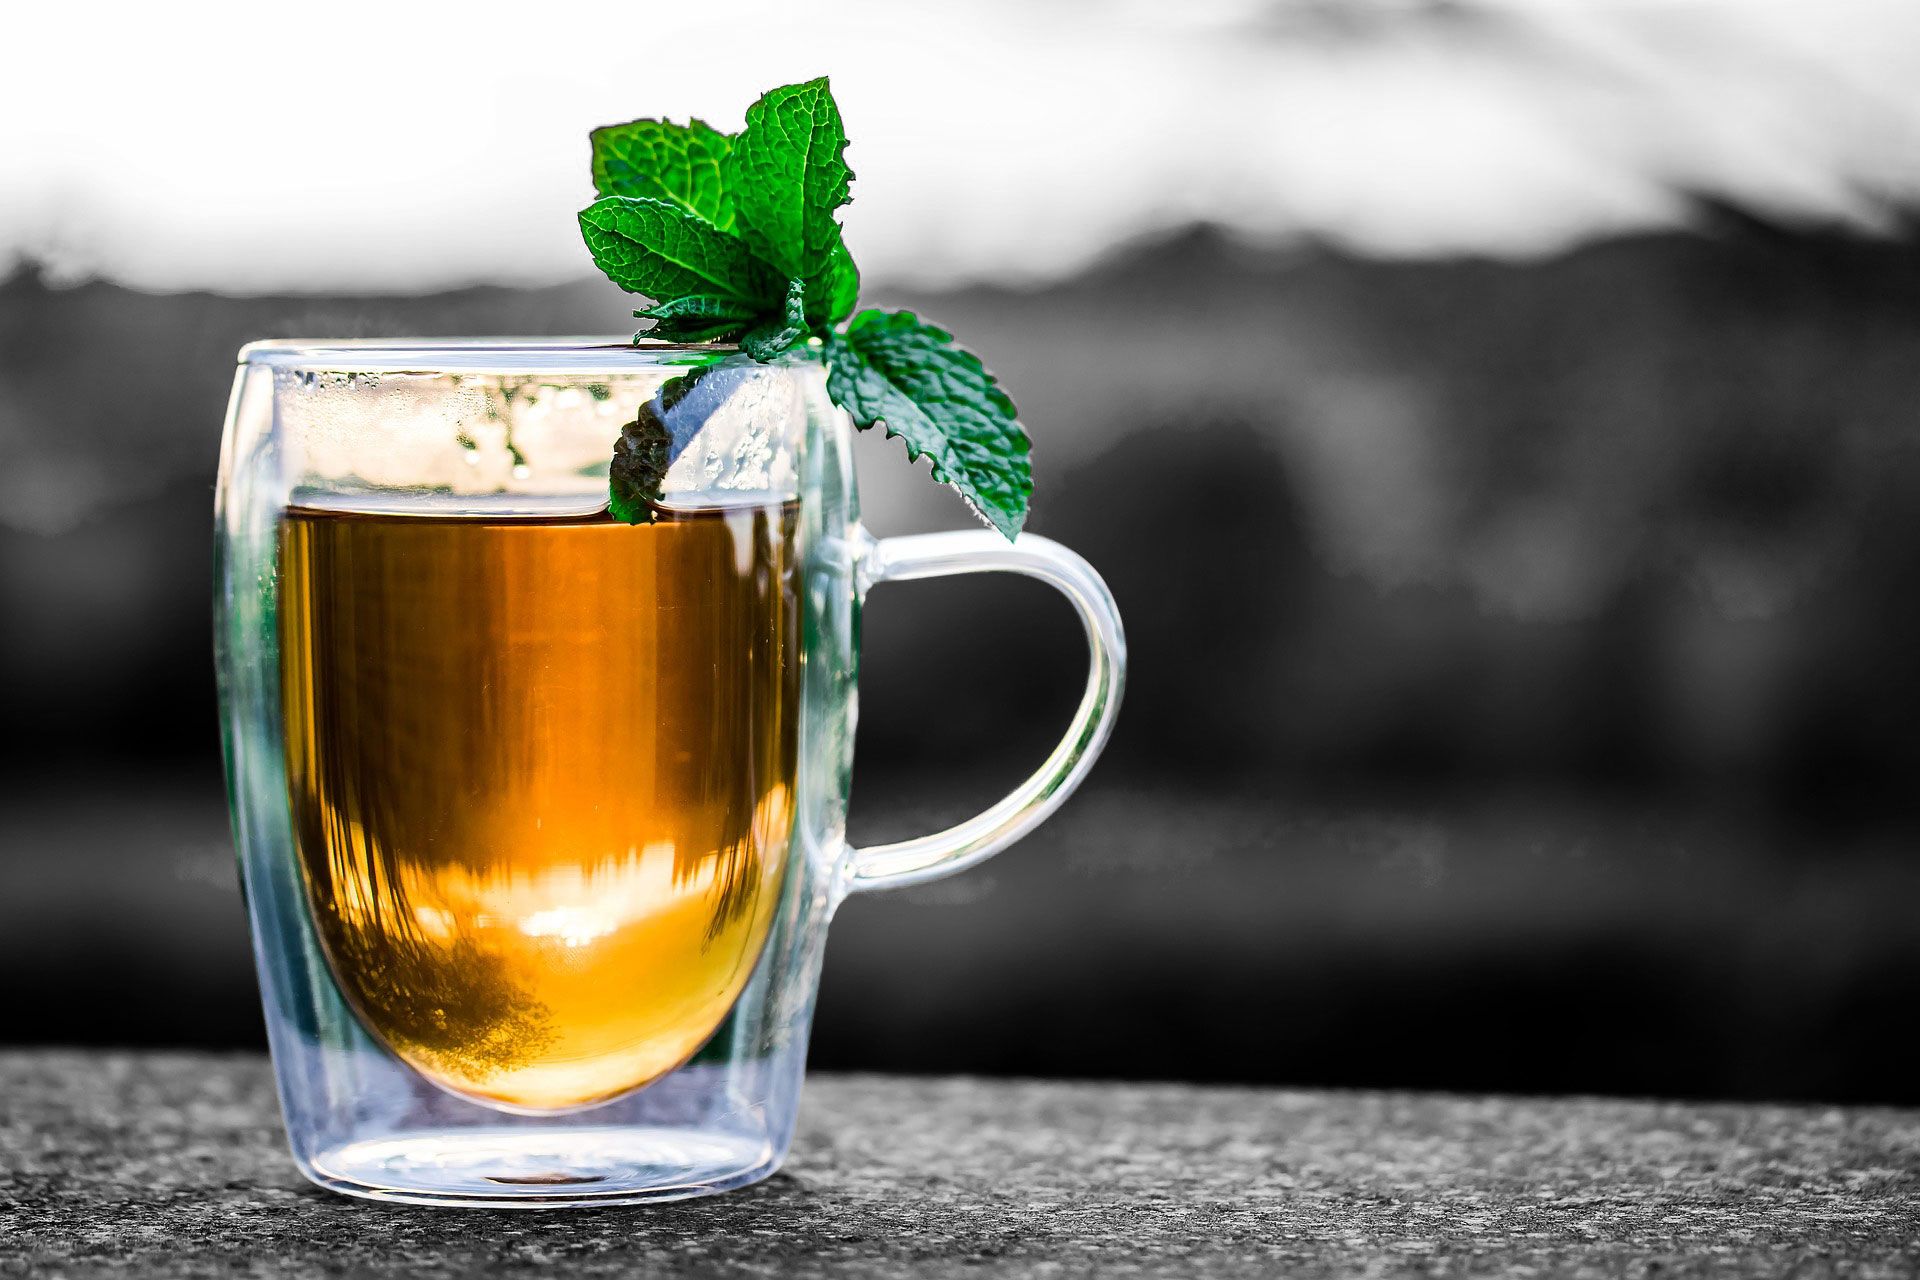 Black and White Background with colorful mug with tea and basil on top of the mug